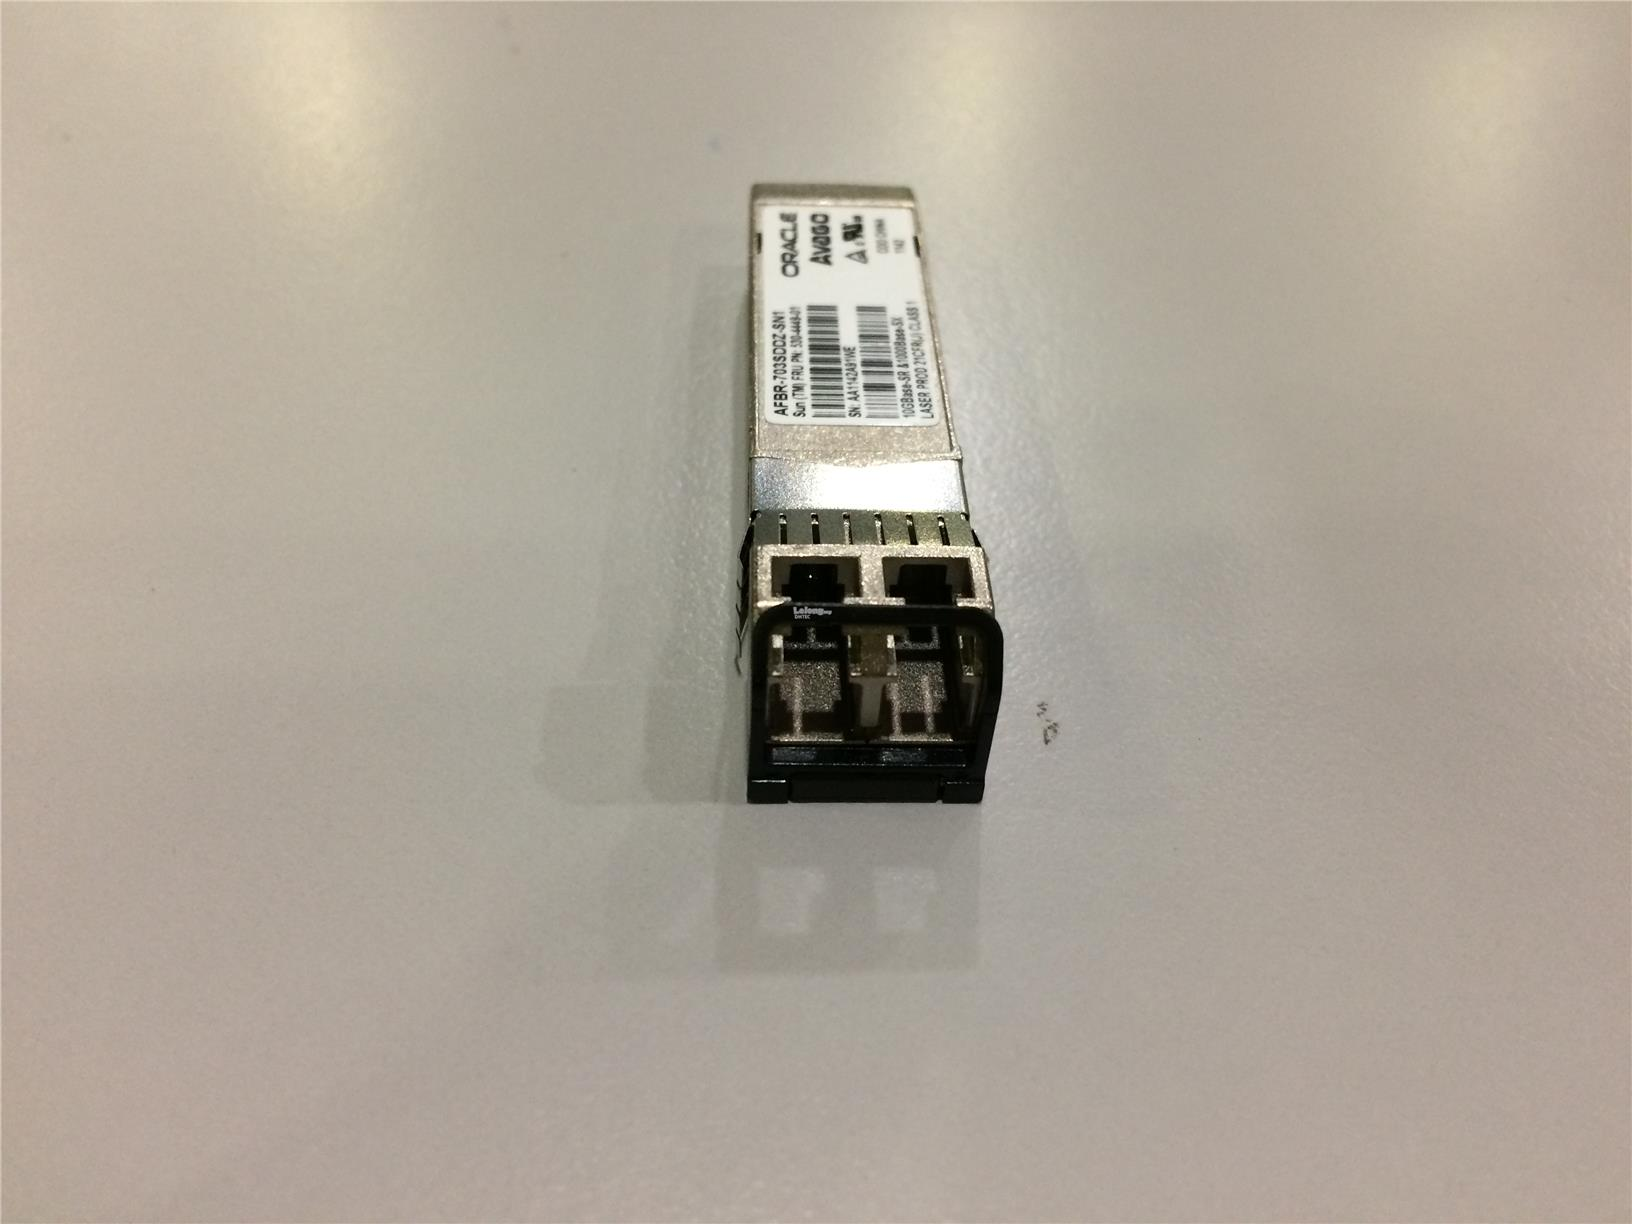 530-4449-01 X2129A-N 10 Gbps Short Wave Pluggable Transceiver